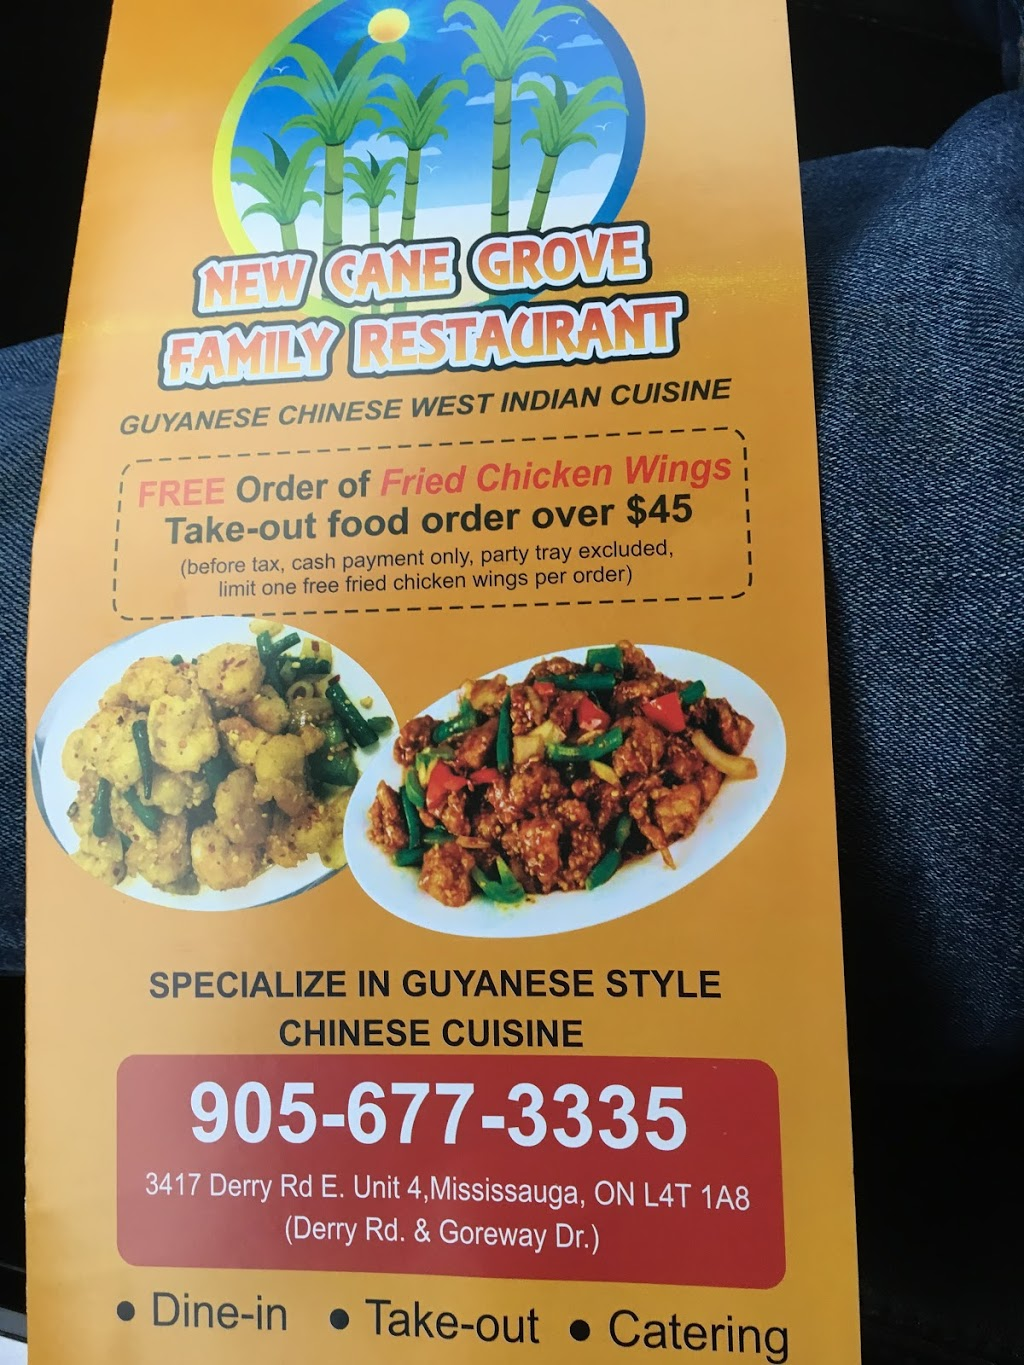 New Cane Grove Family Restaurant   restaurant   3417 Derry Rd E, Mississauga, ON L4T 1A8, Canada   9056773335 OR +1 905-677-3335